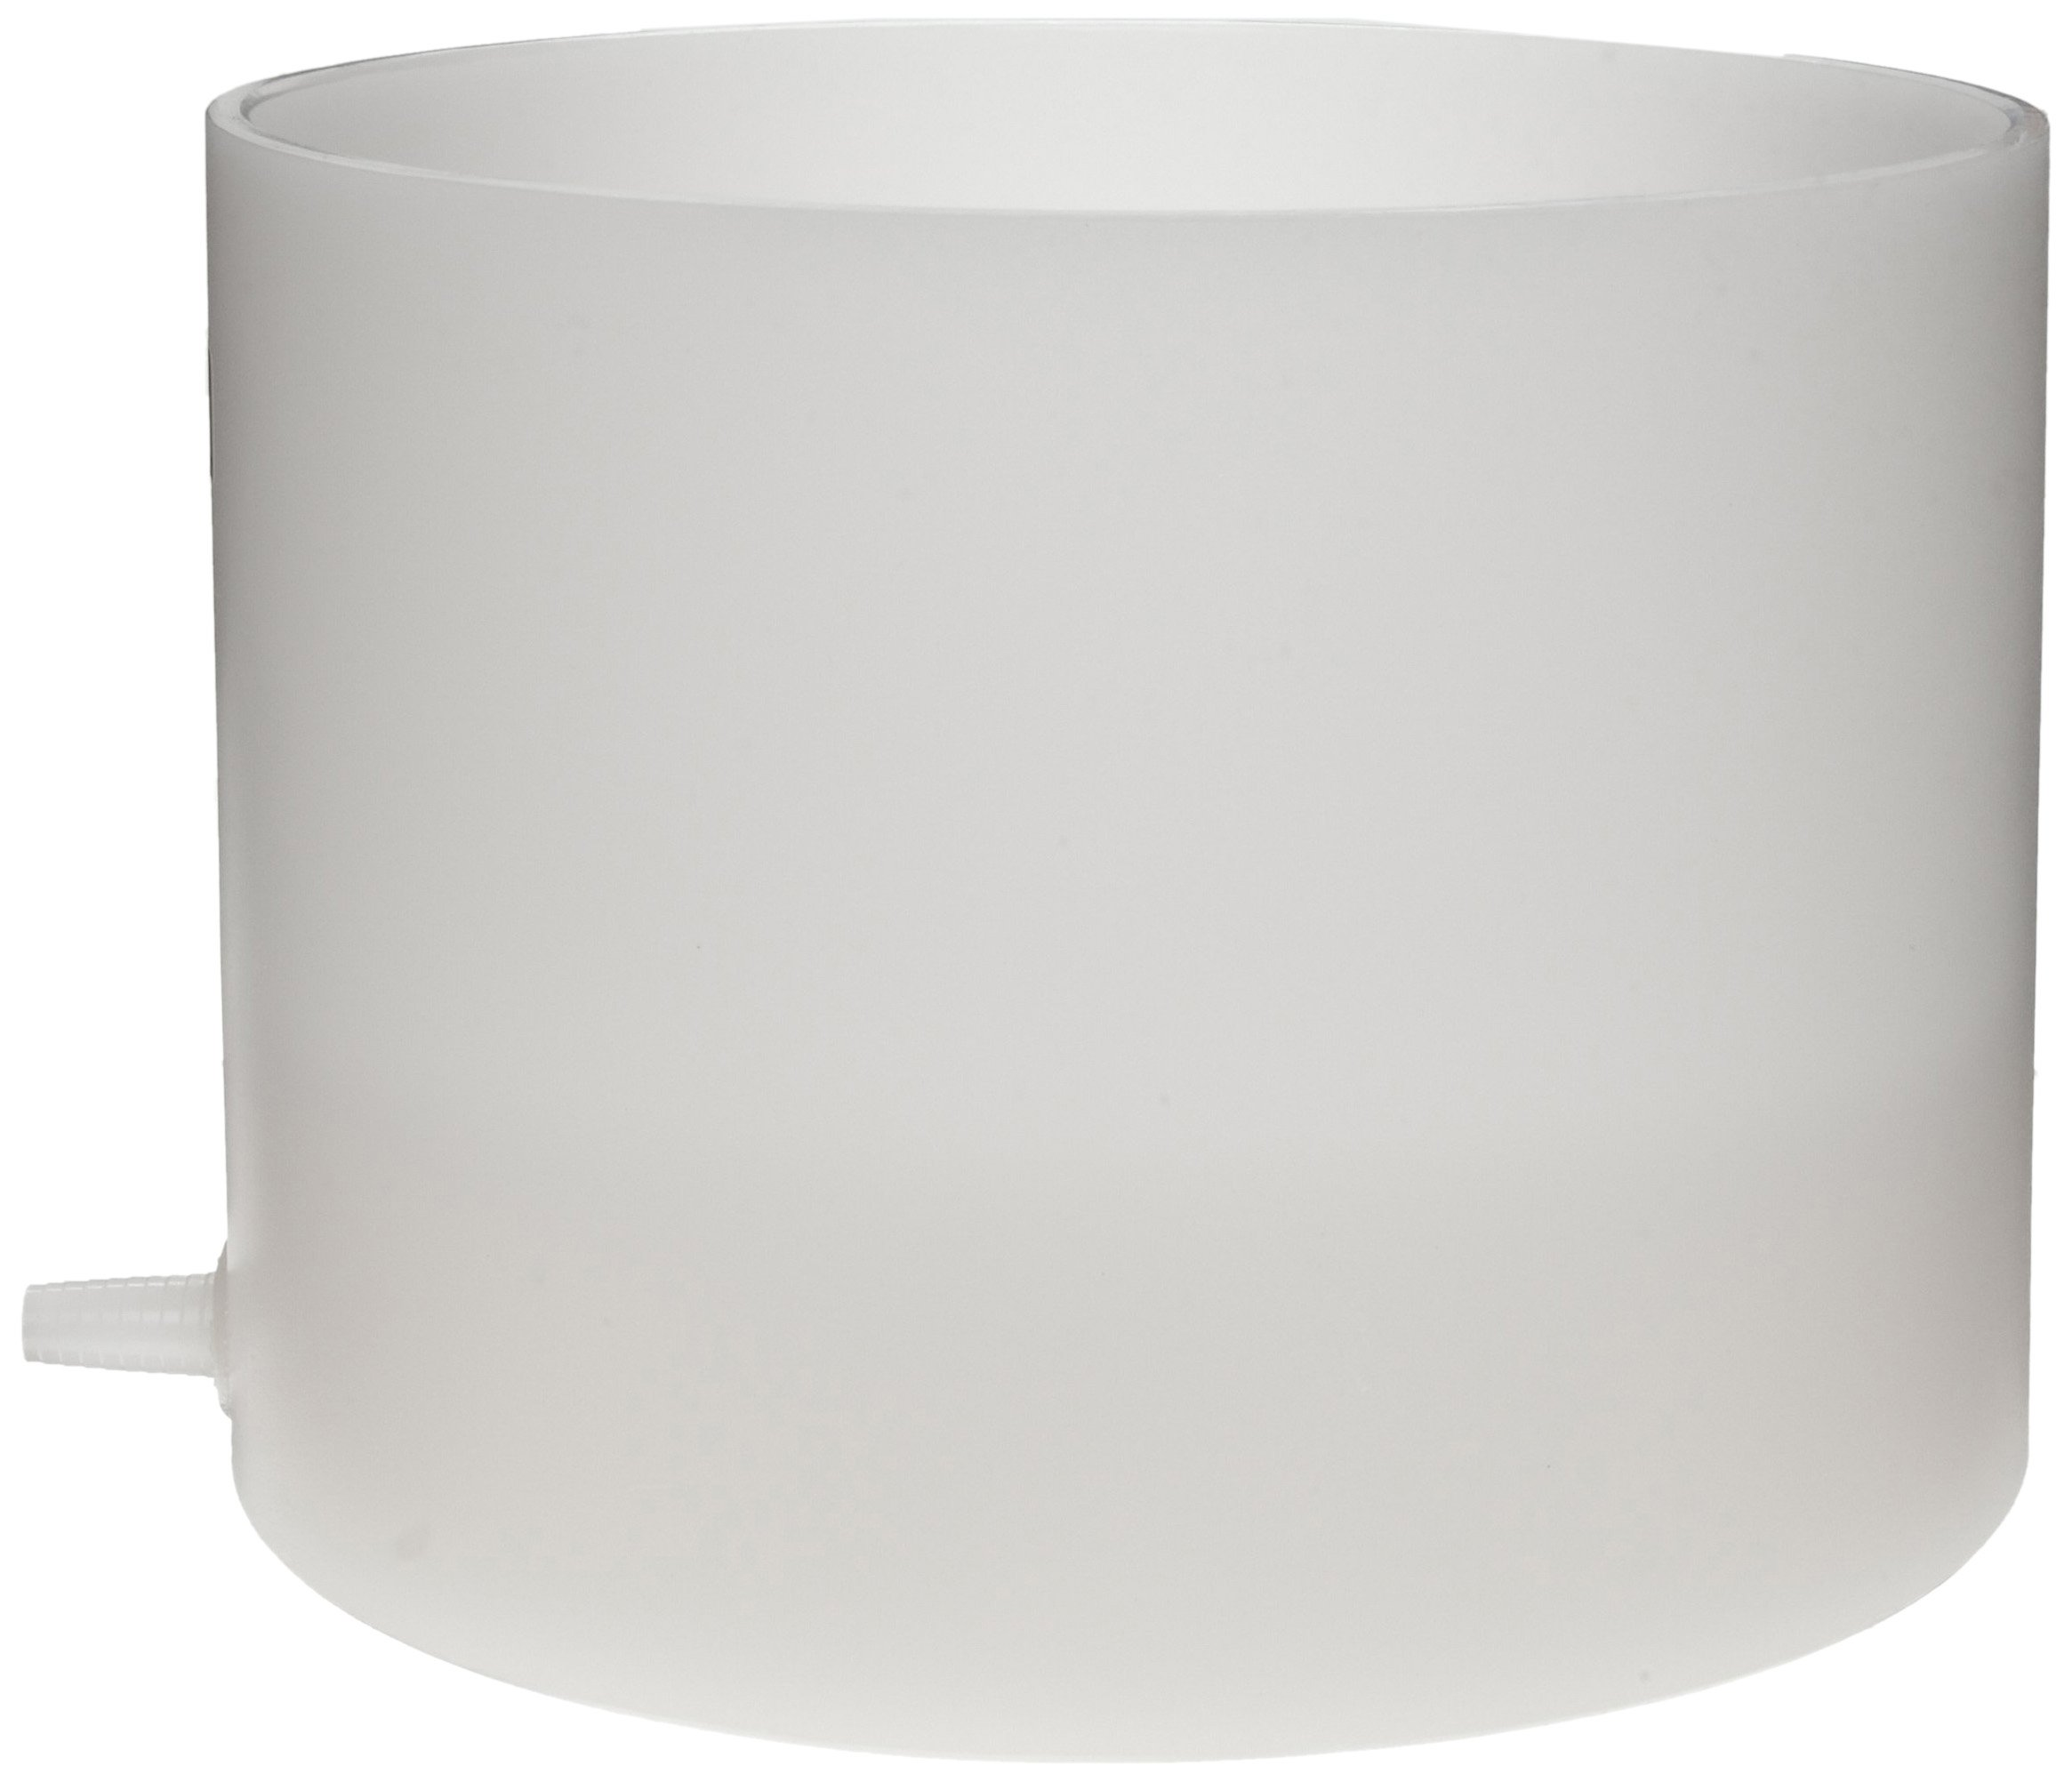 Bel-Art Polyethylene Buchner Table-Top Funnel with Coarse Porosity Fixed Plate; 18 in. I.D, 11.5 in. Height (H14621-0000)